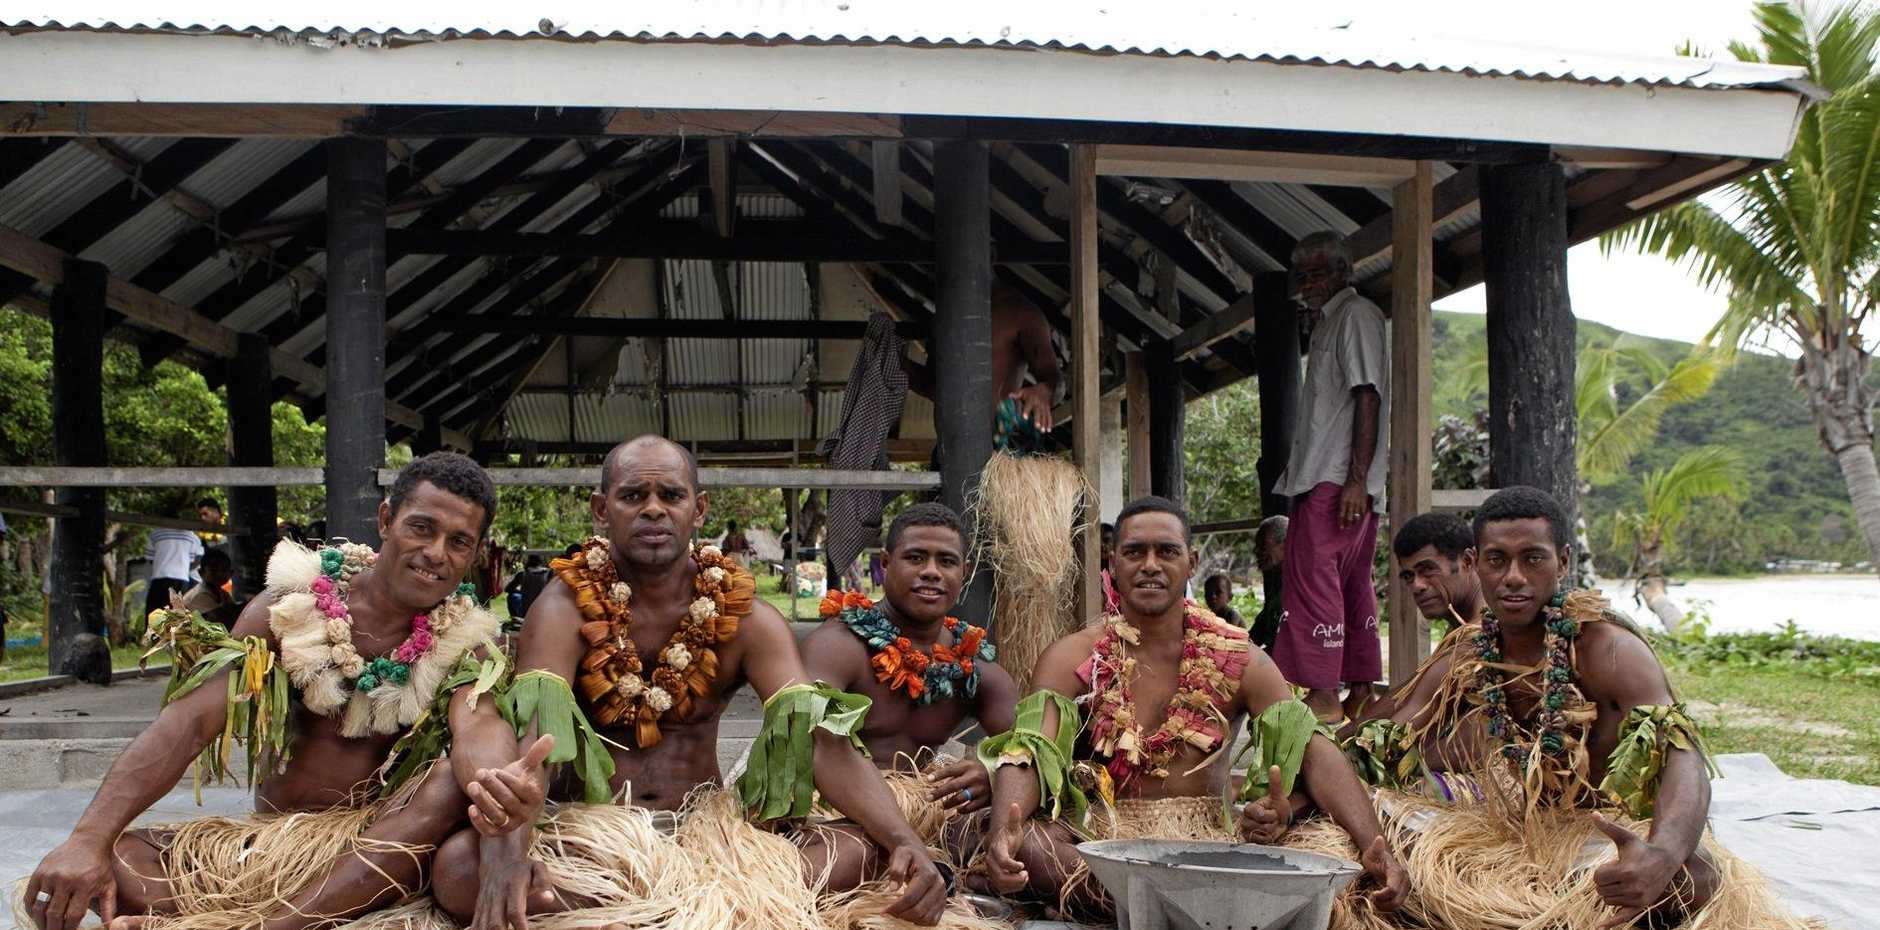 The kava welcoming ceremony is a special treat when you visit the remote smaller islands of Fiji.